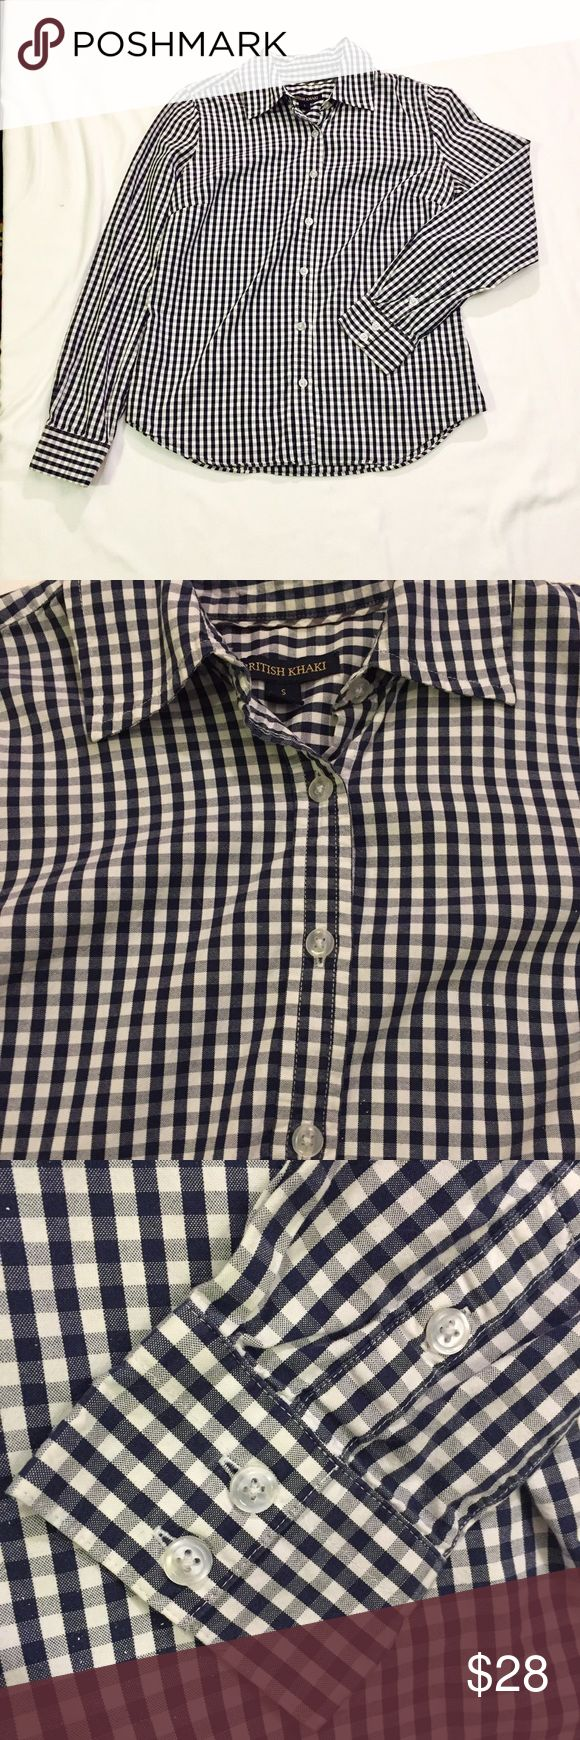 British Khaki Button Down Size Small Navy and white gingham checked Button size small. British Khaki Tops Button Down Shirts